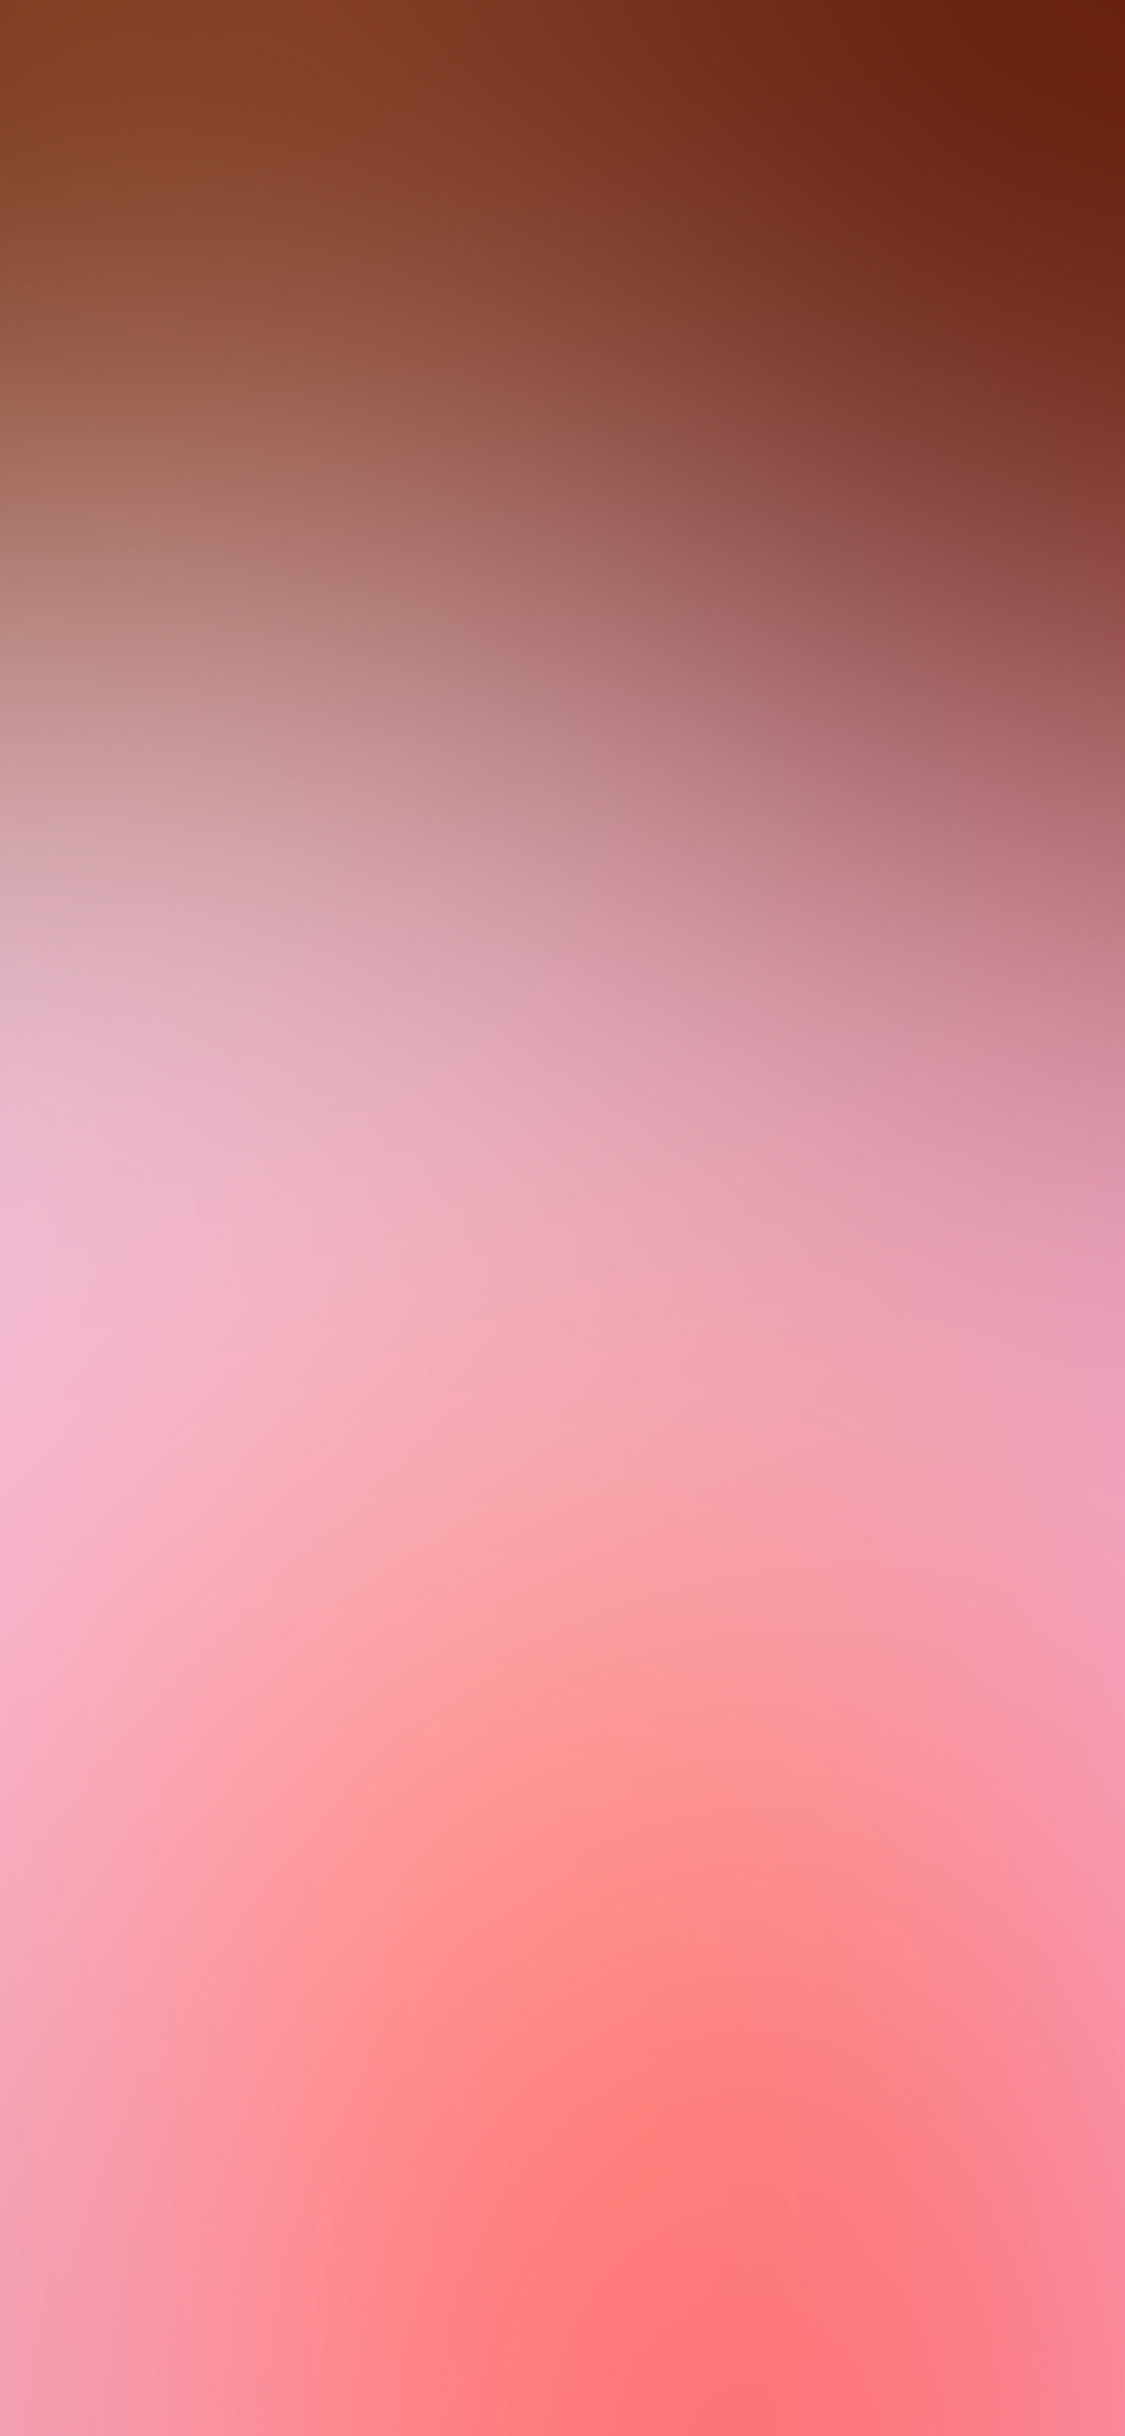 iPhoneXpapers.com-Apple-iPhone-wallpaper-sb14-wallpaper-blushing-b-blur